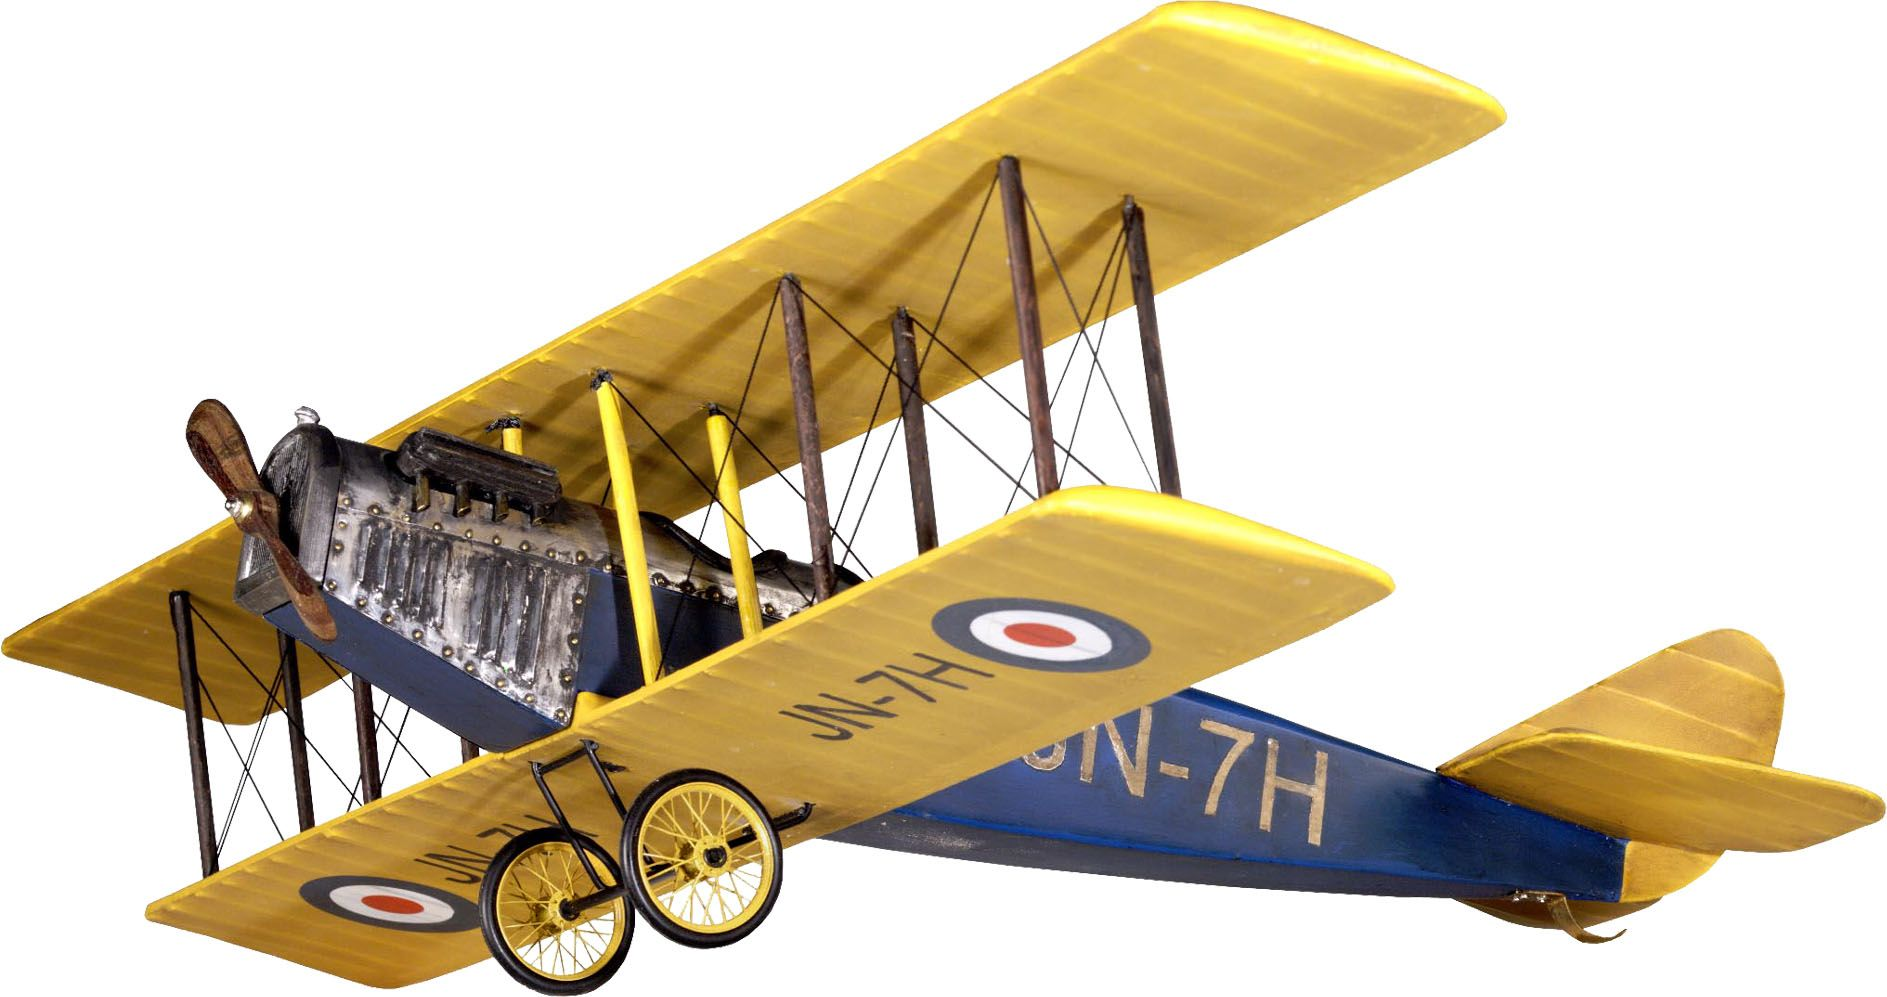 pictures of model airplanes | ... Barnstormer model airplane by ...